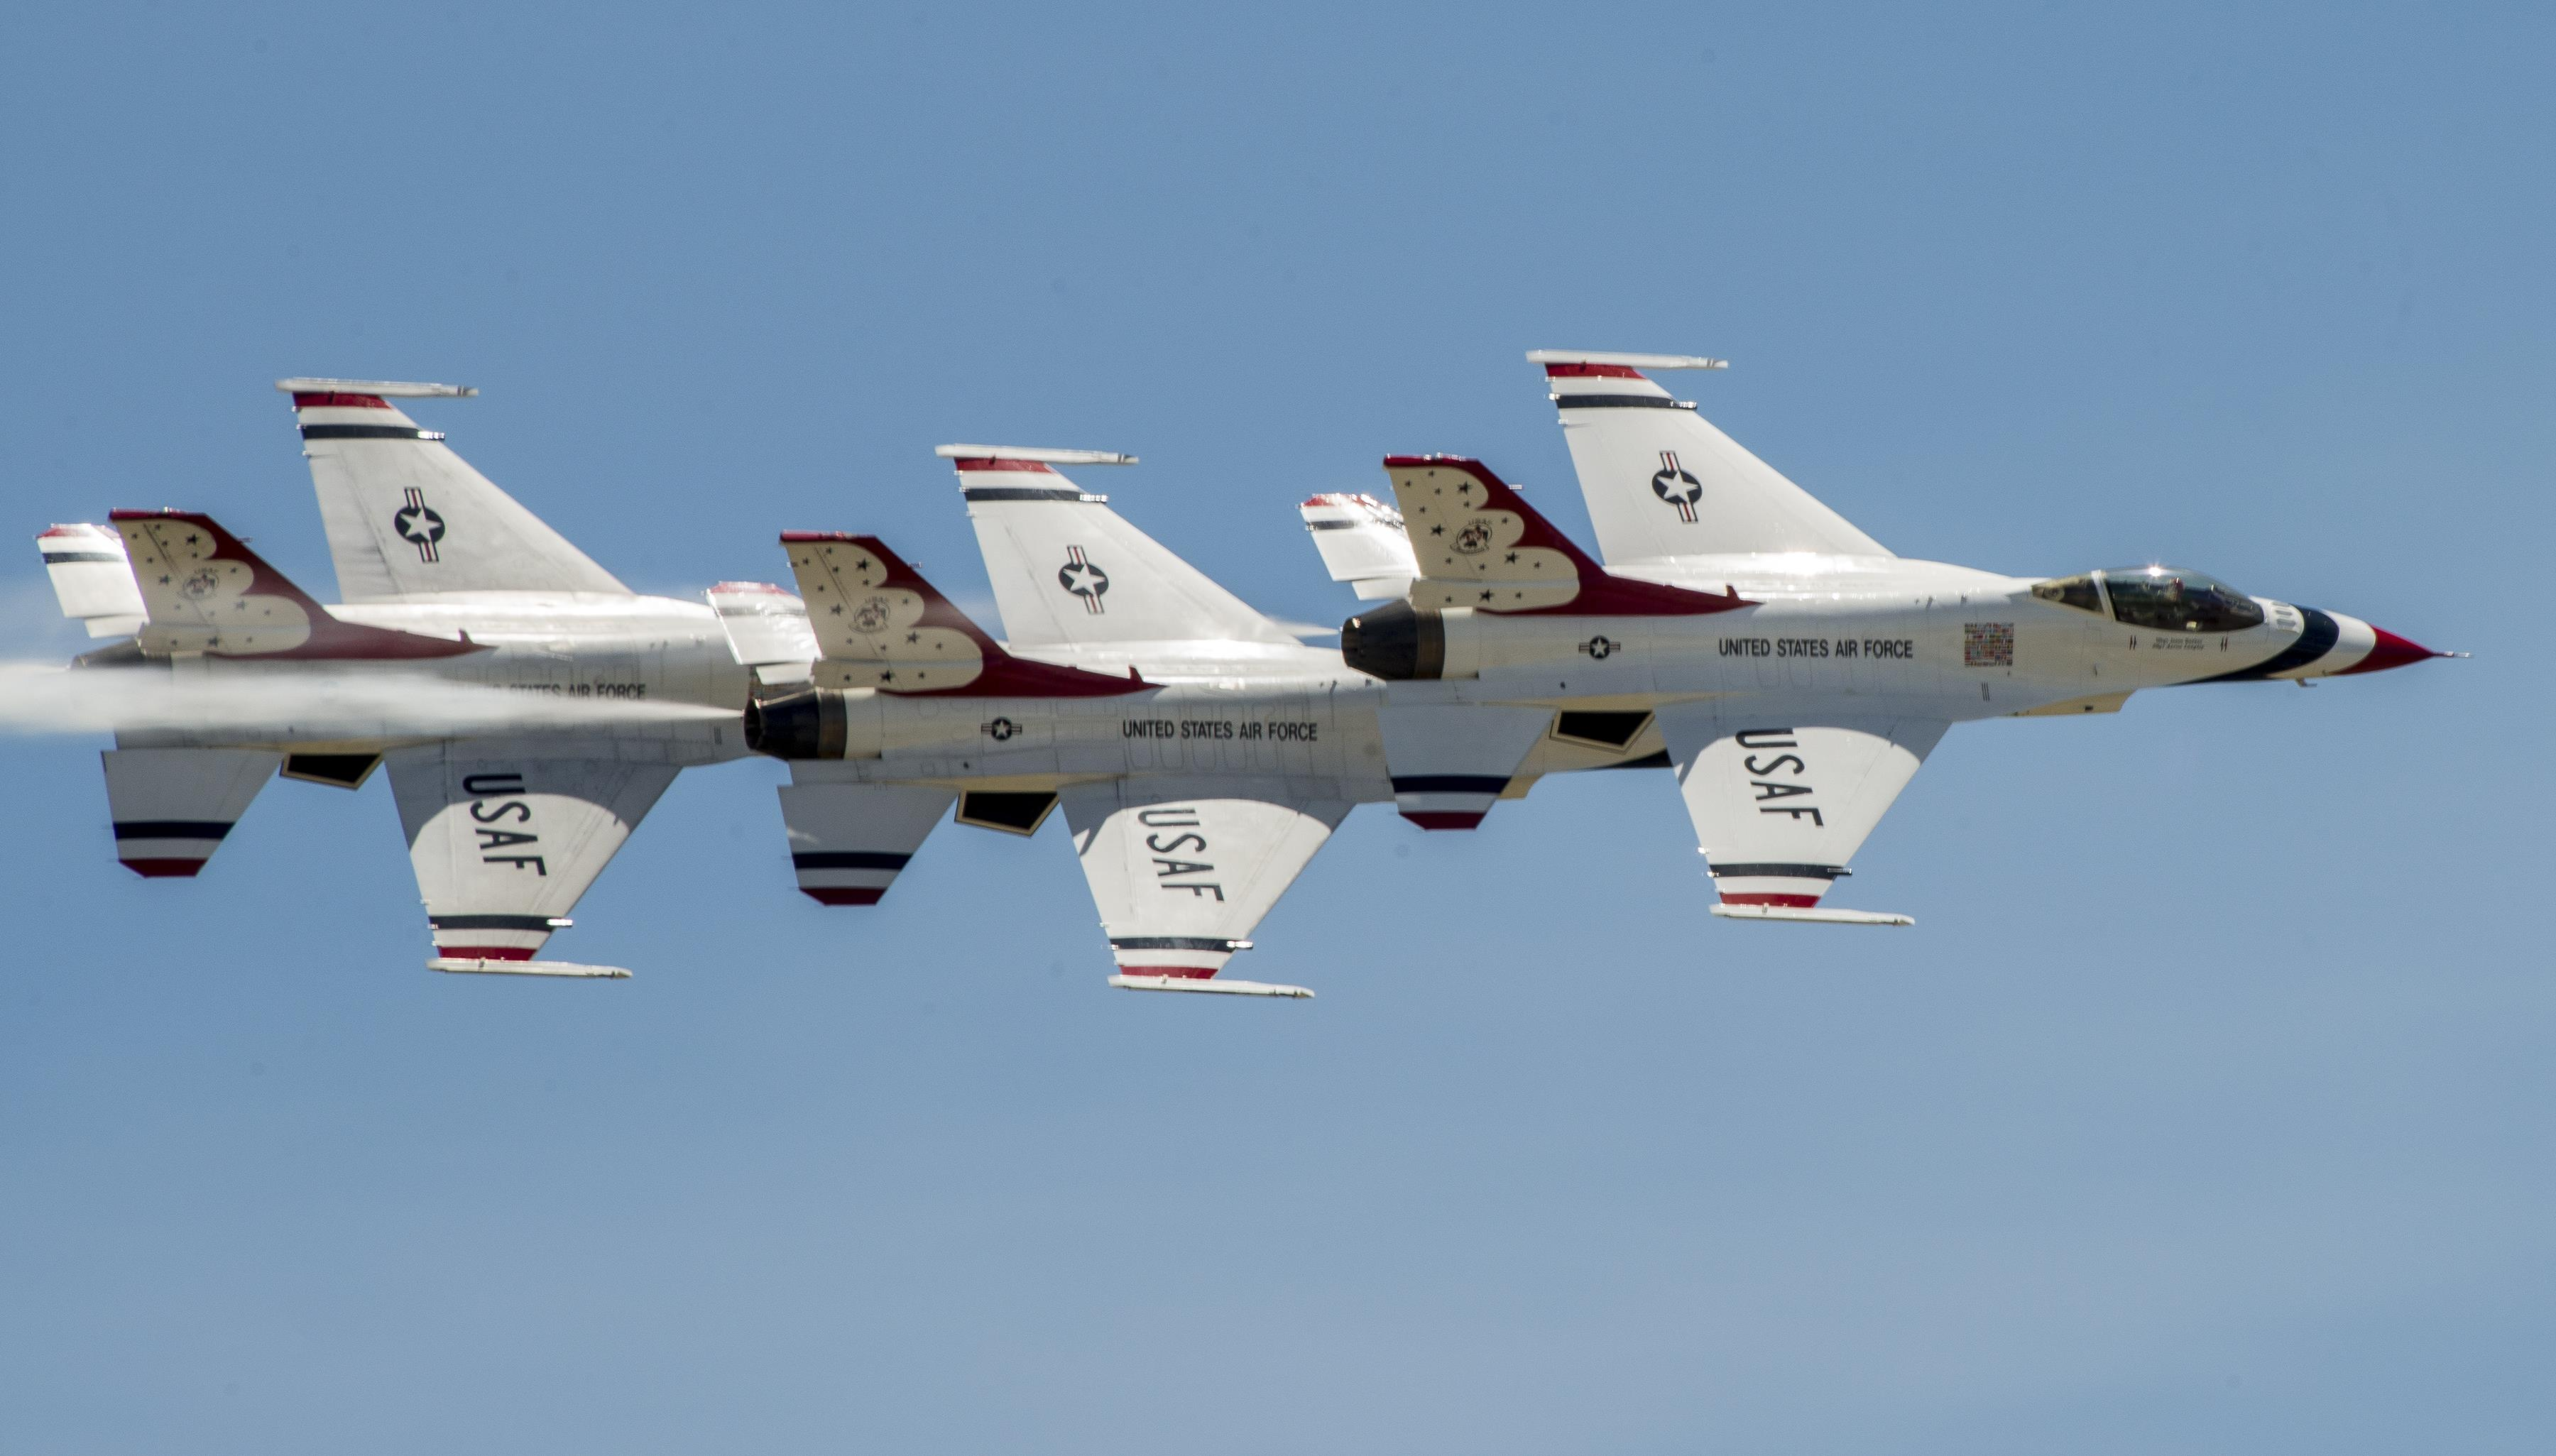 Photos - United states air force bases